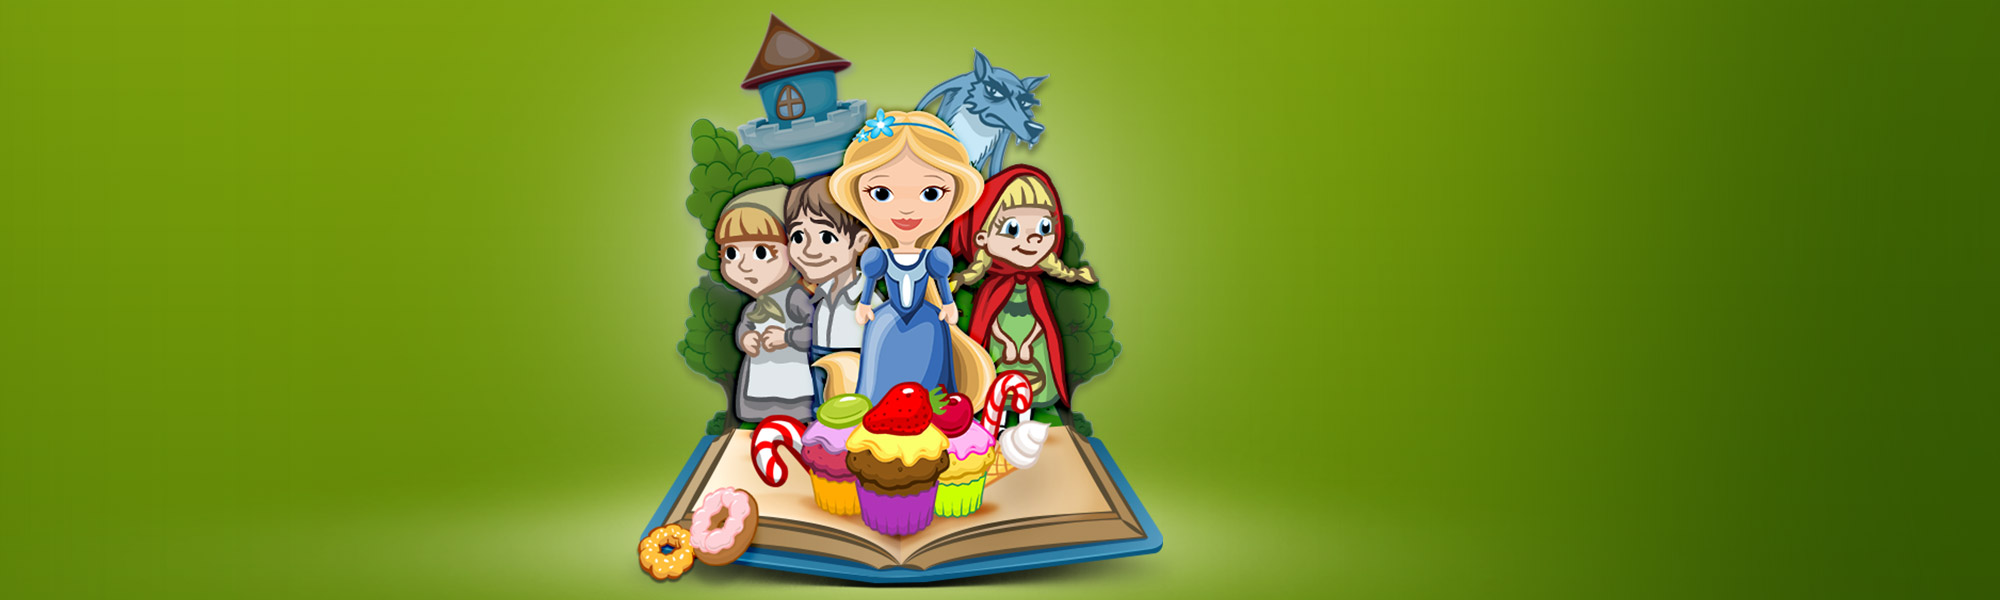 Grimm's Collection Vol 1 Kids App - StoryToys Apps